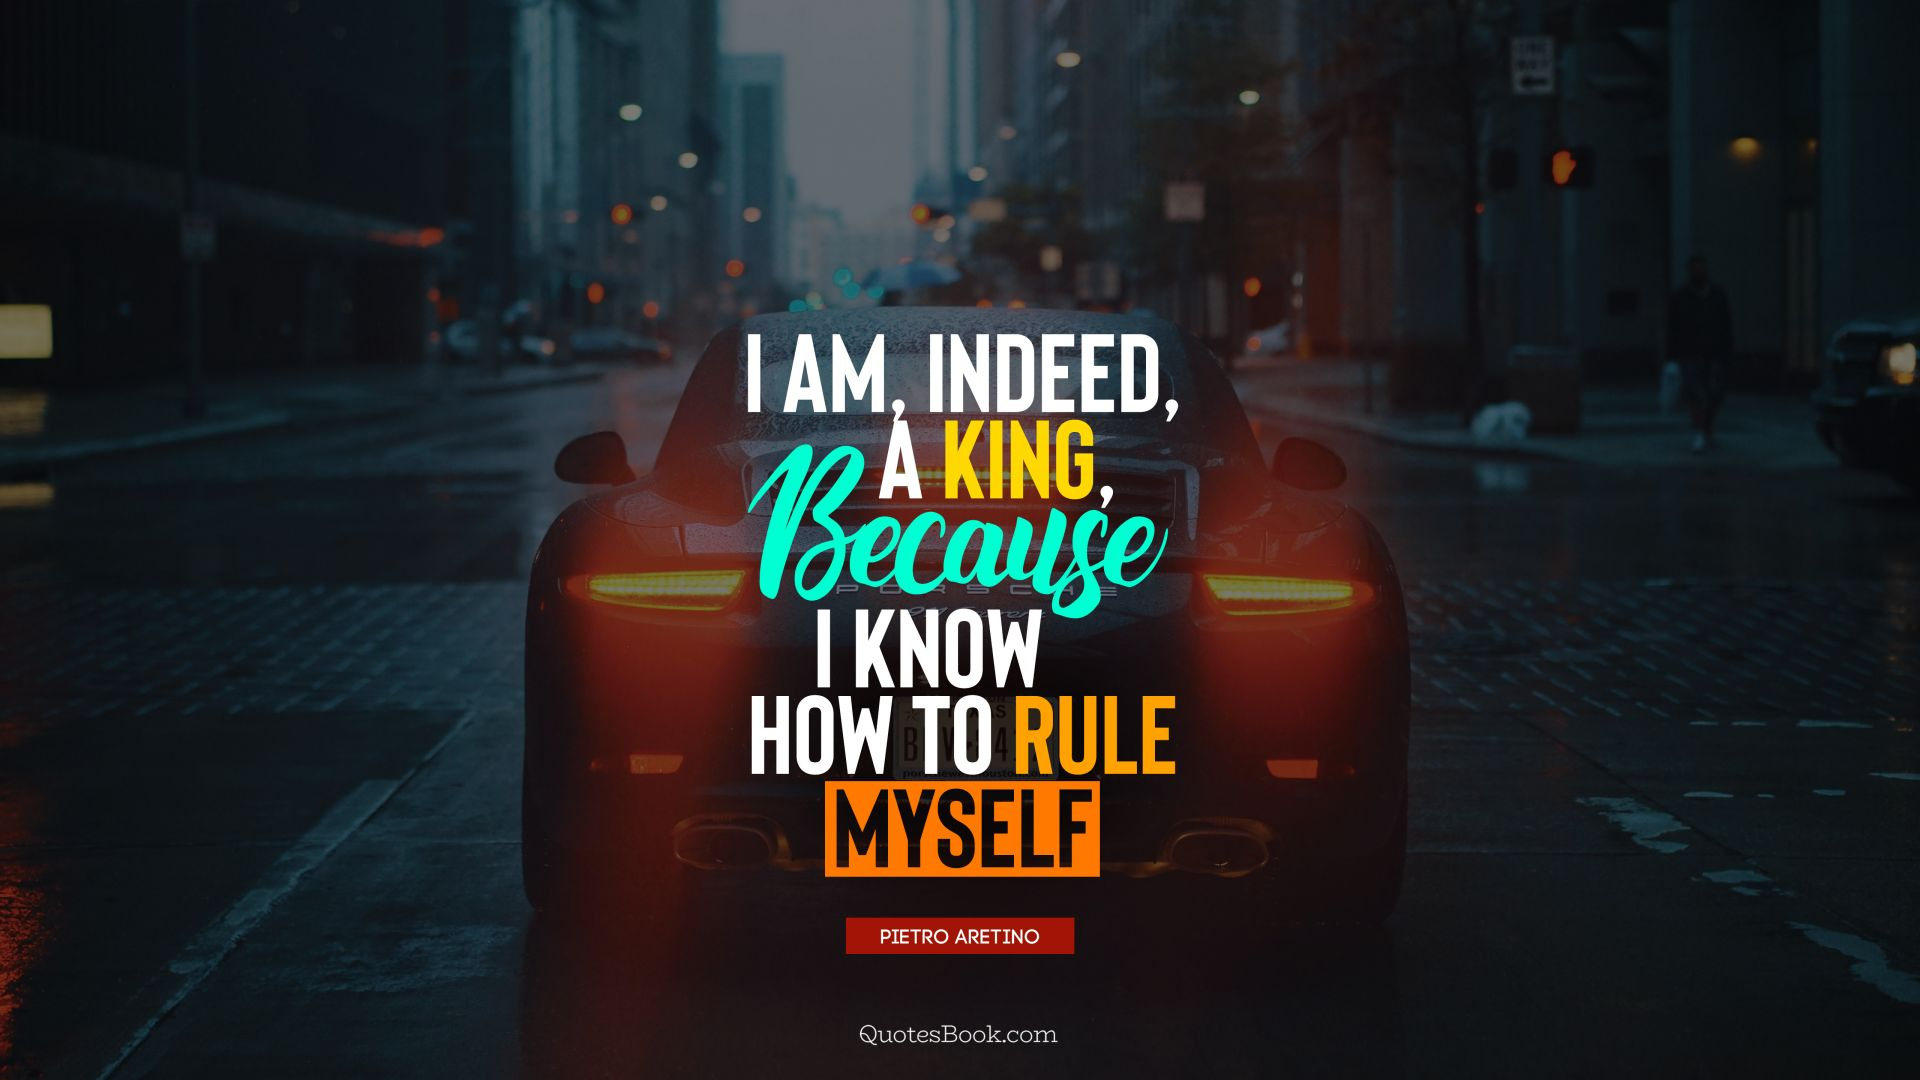 I am, indeed, a king, because I know how to rule myself. - Quote by Pietro Aretino